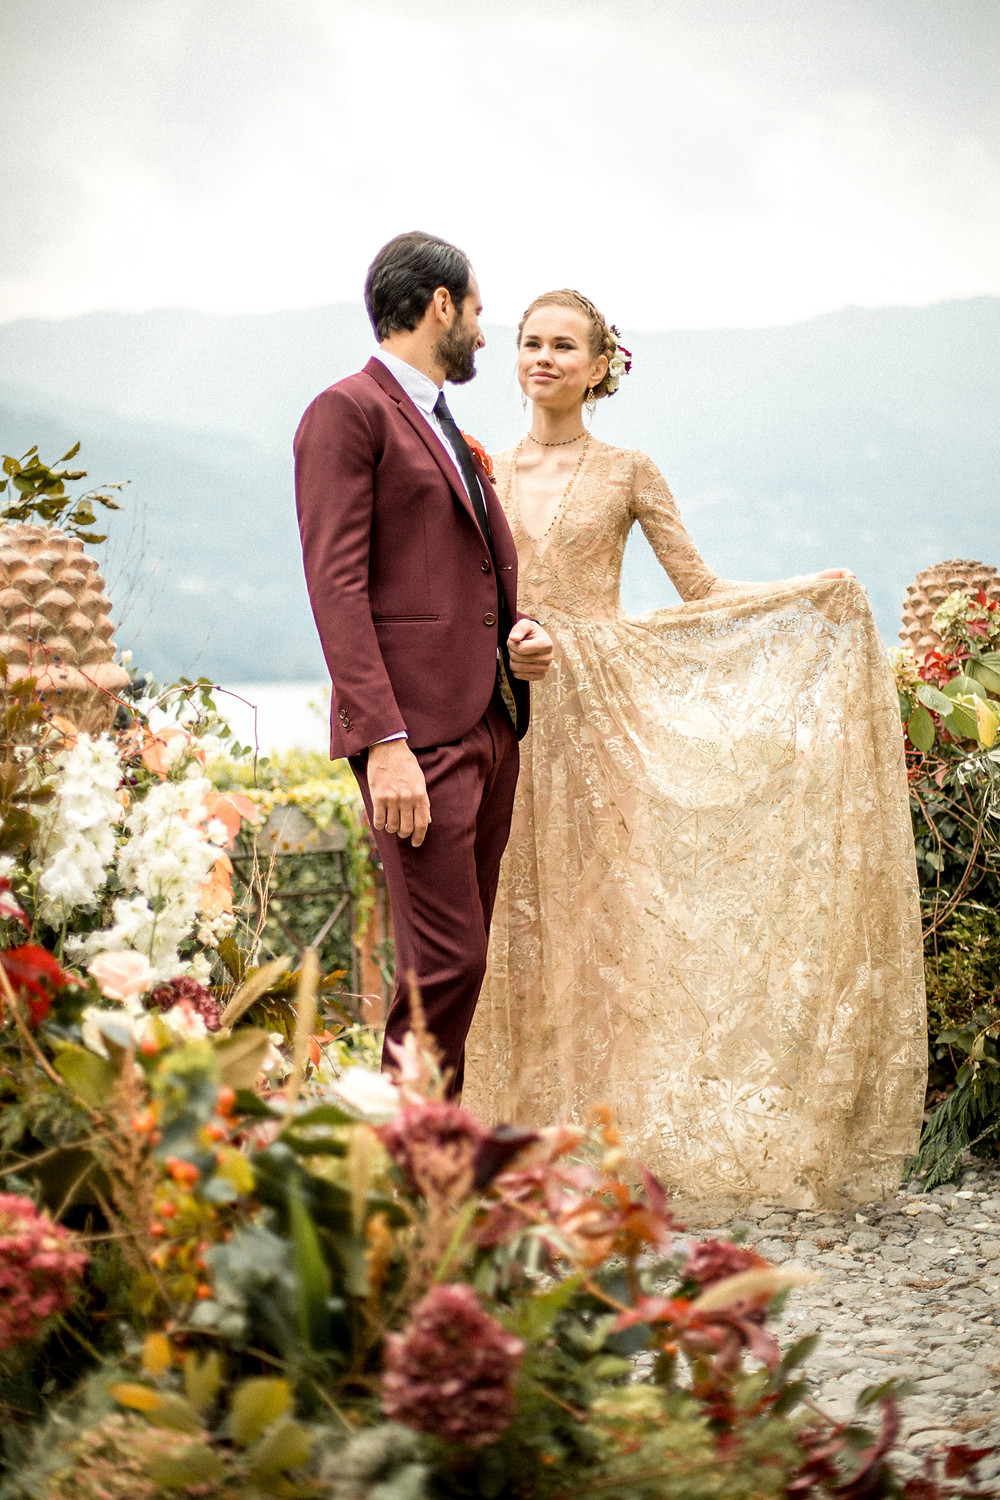 Villa by the lake elopement in Lake Como Italy || Destination Weddingphotographer Italy || Victoria Ruef - Bohoray Adventure Wedding & Elopementphotographer